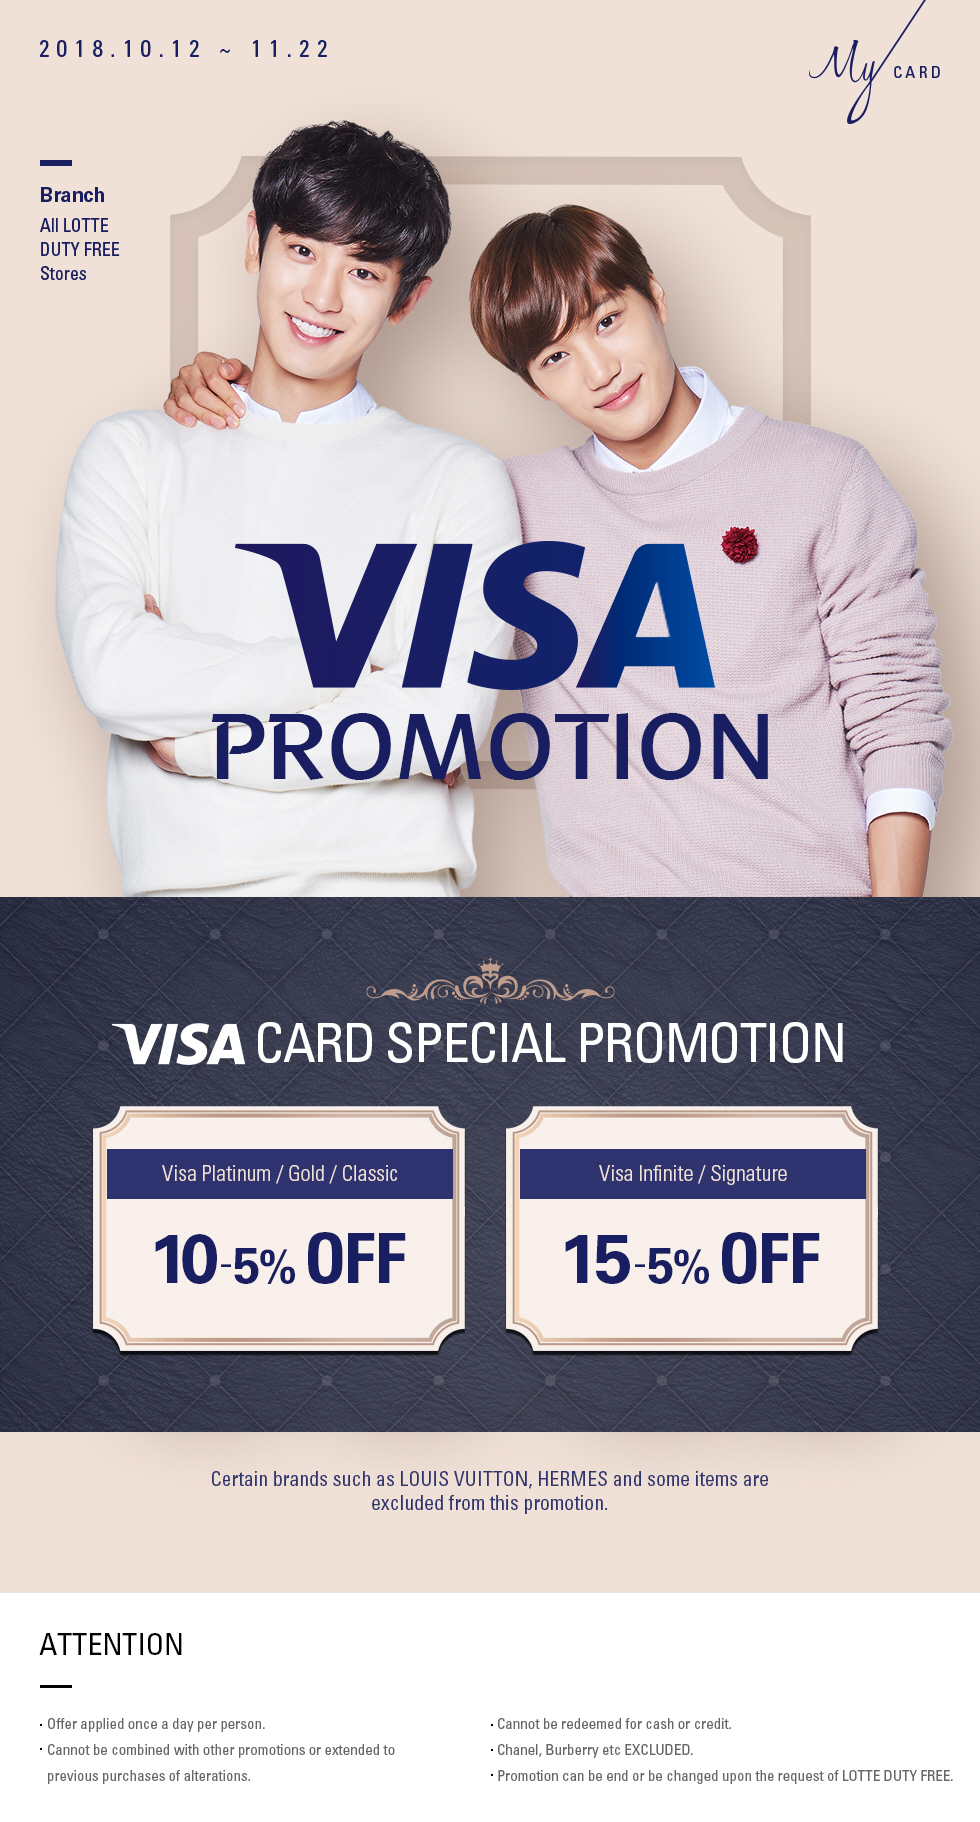 VISA Card Special Promotion